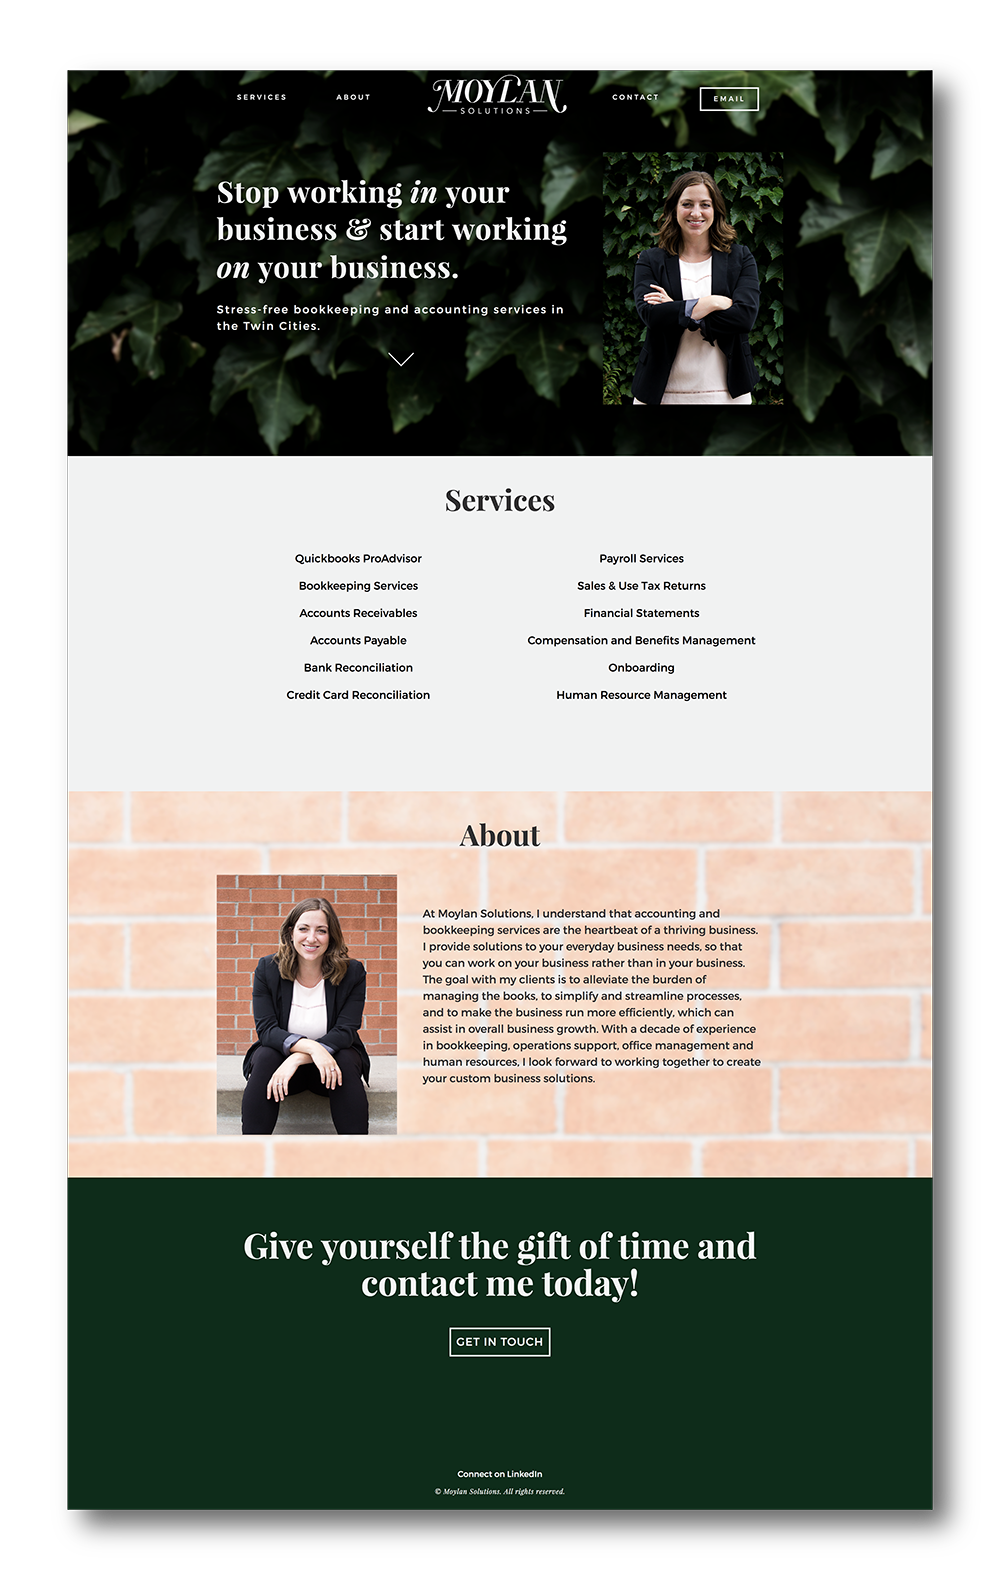 Website designed and coded by me.